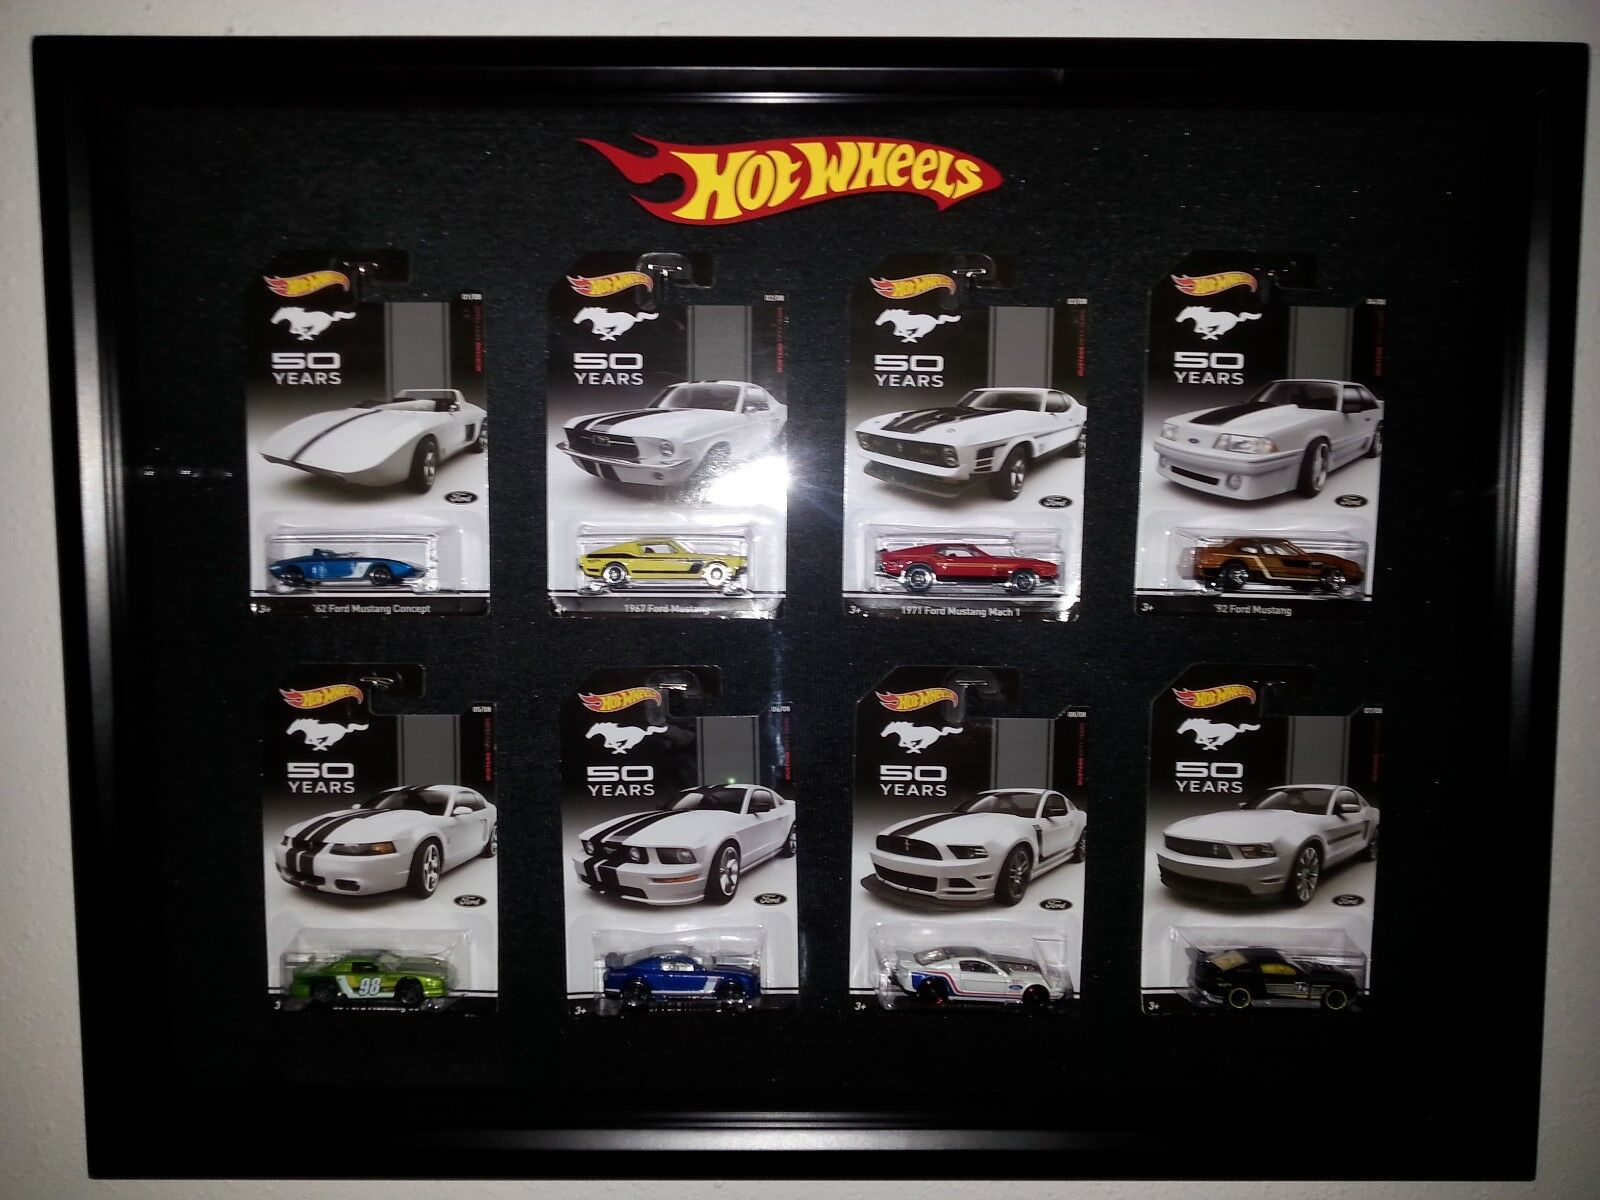 Hot Wheels Mustang 50 years set of 8 - Nice Display